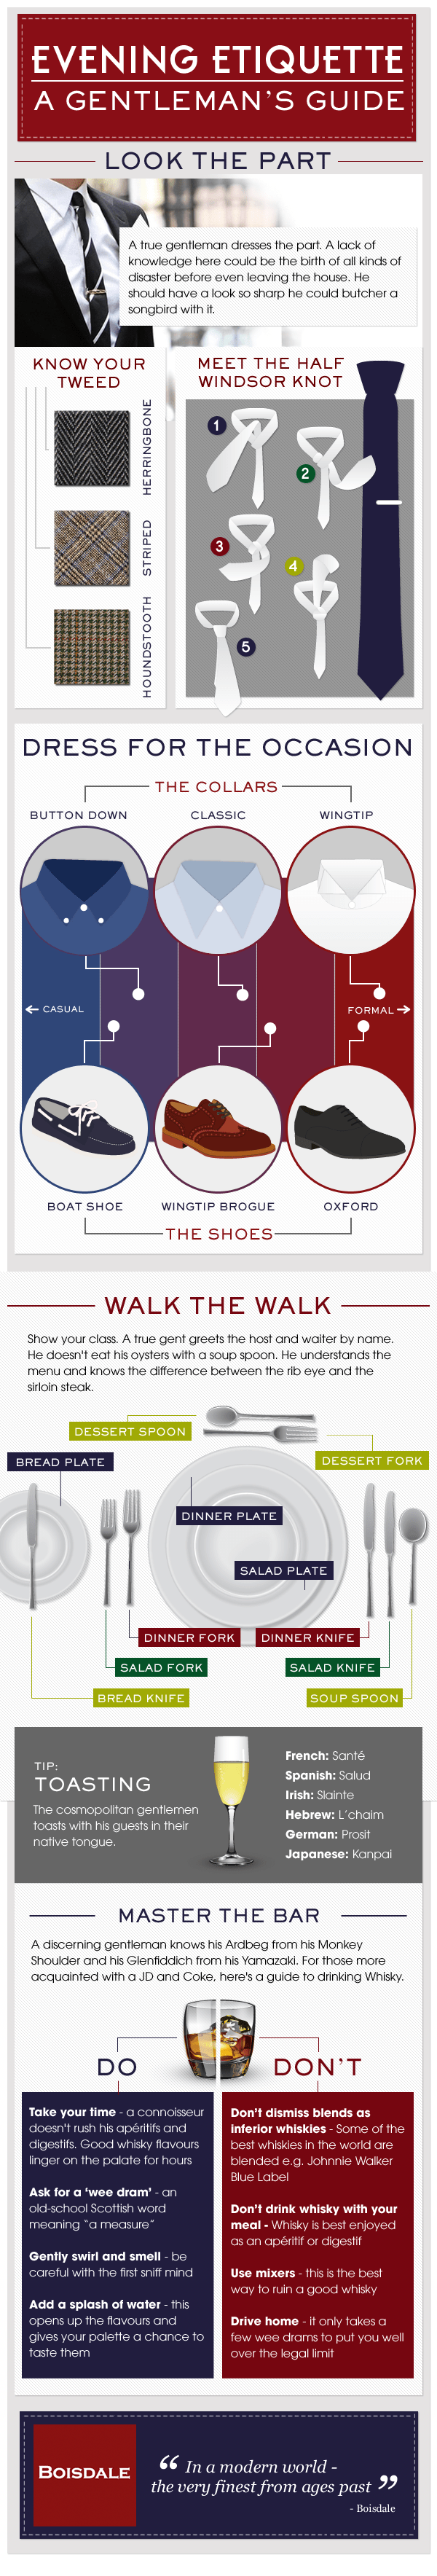 Gentlemans Guide For Evening Etiquette infographic